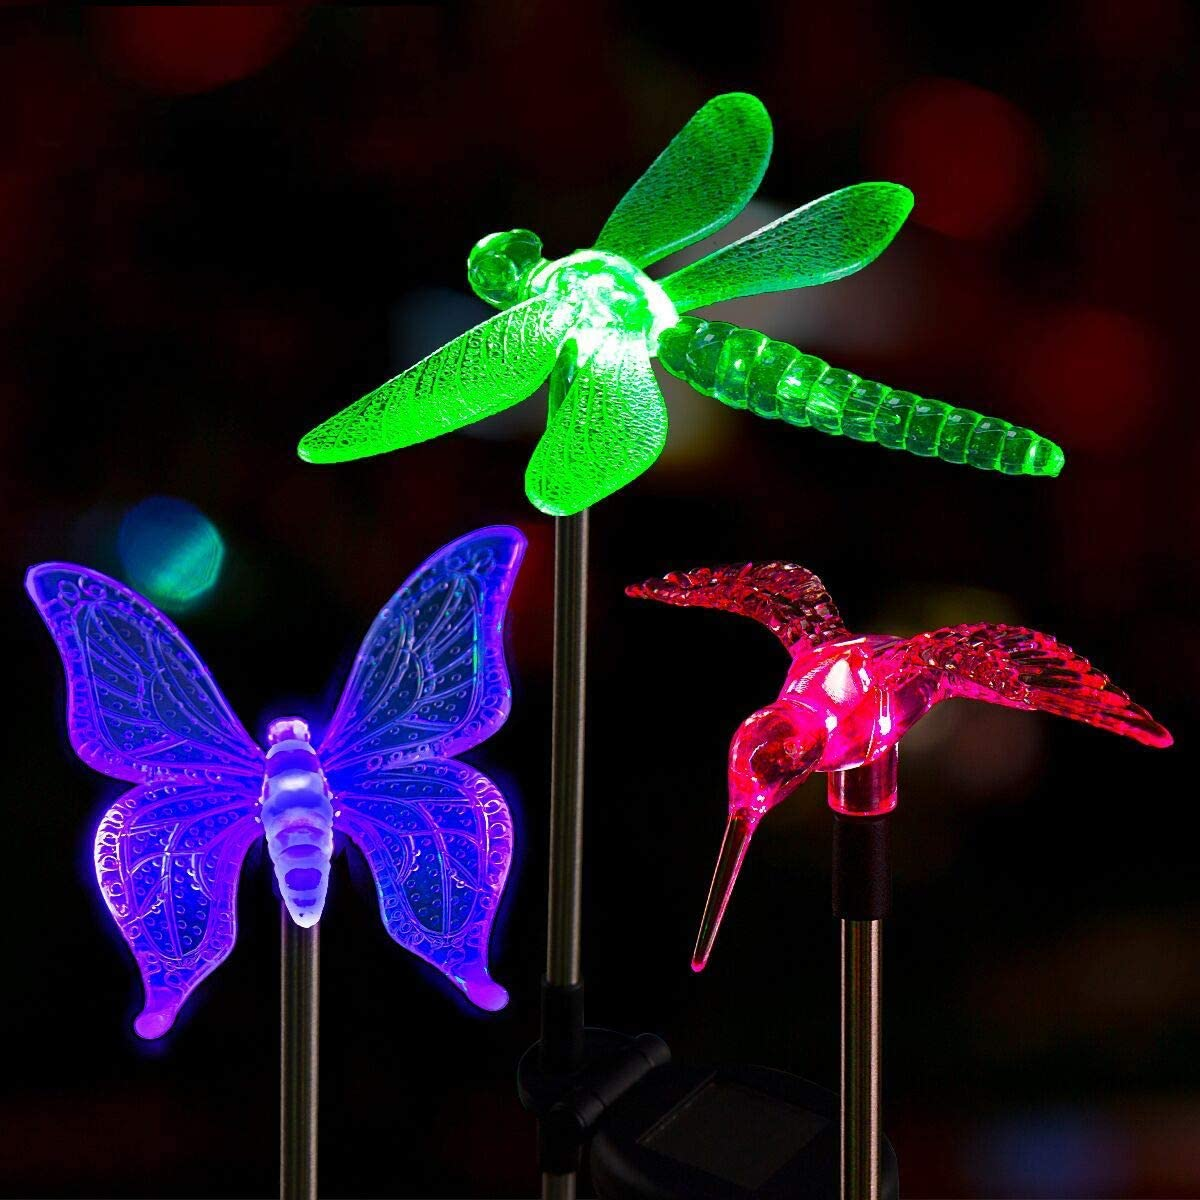 Solpex Solar Garden Stake Lights,3 Pack Bird Decorative Light,Solar Garden Lights,Multi-Color Changing LED Solar Landscape Decorative Lights for Patio,Garden,Pathway,Lawn